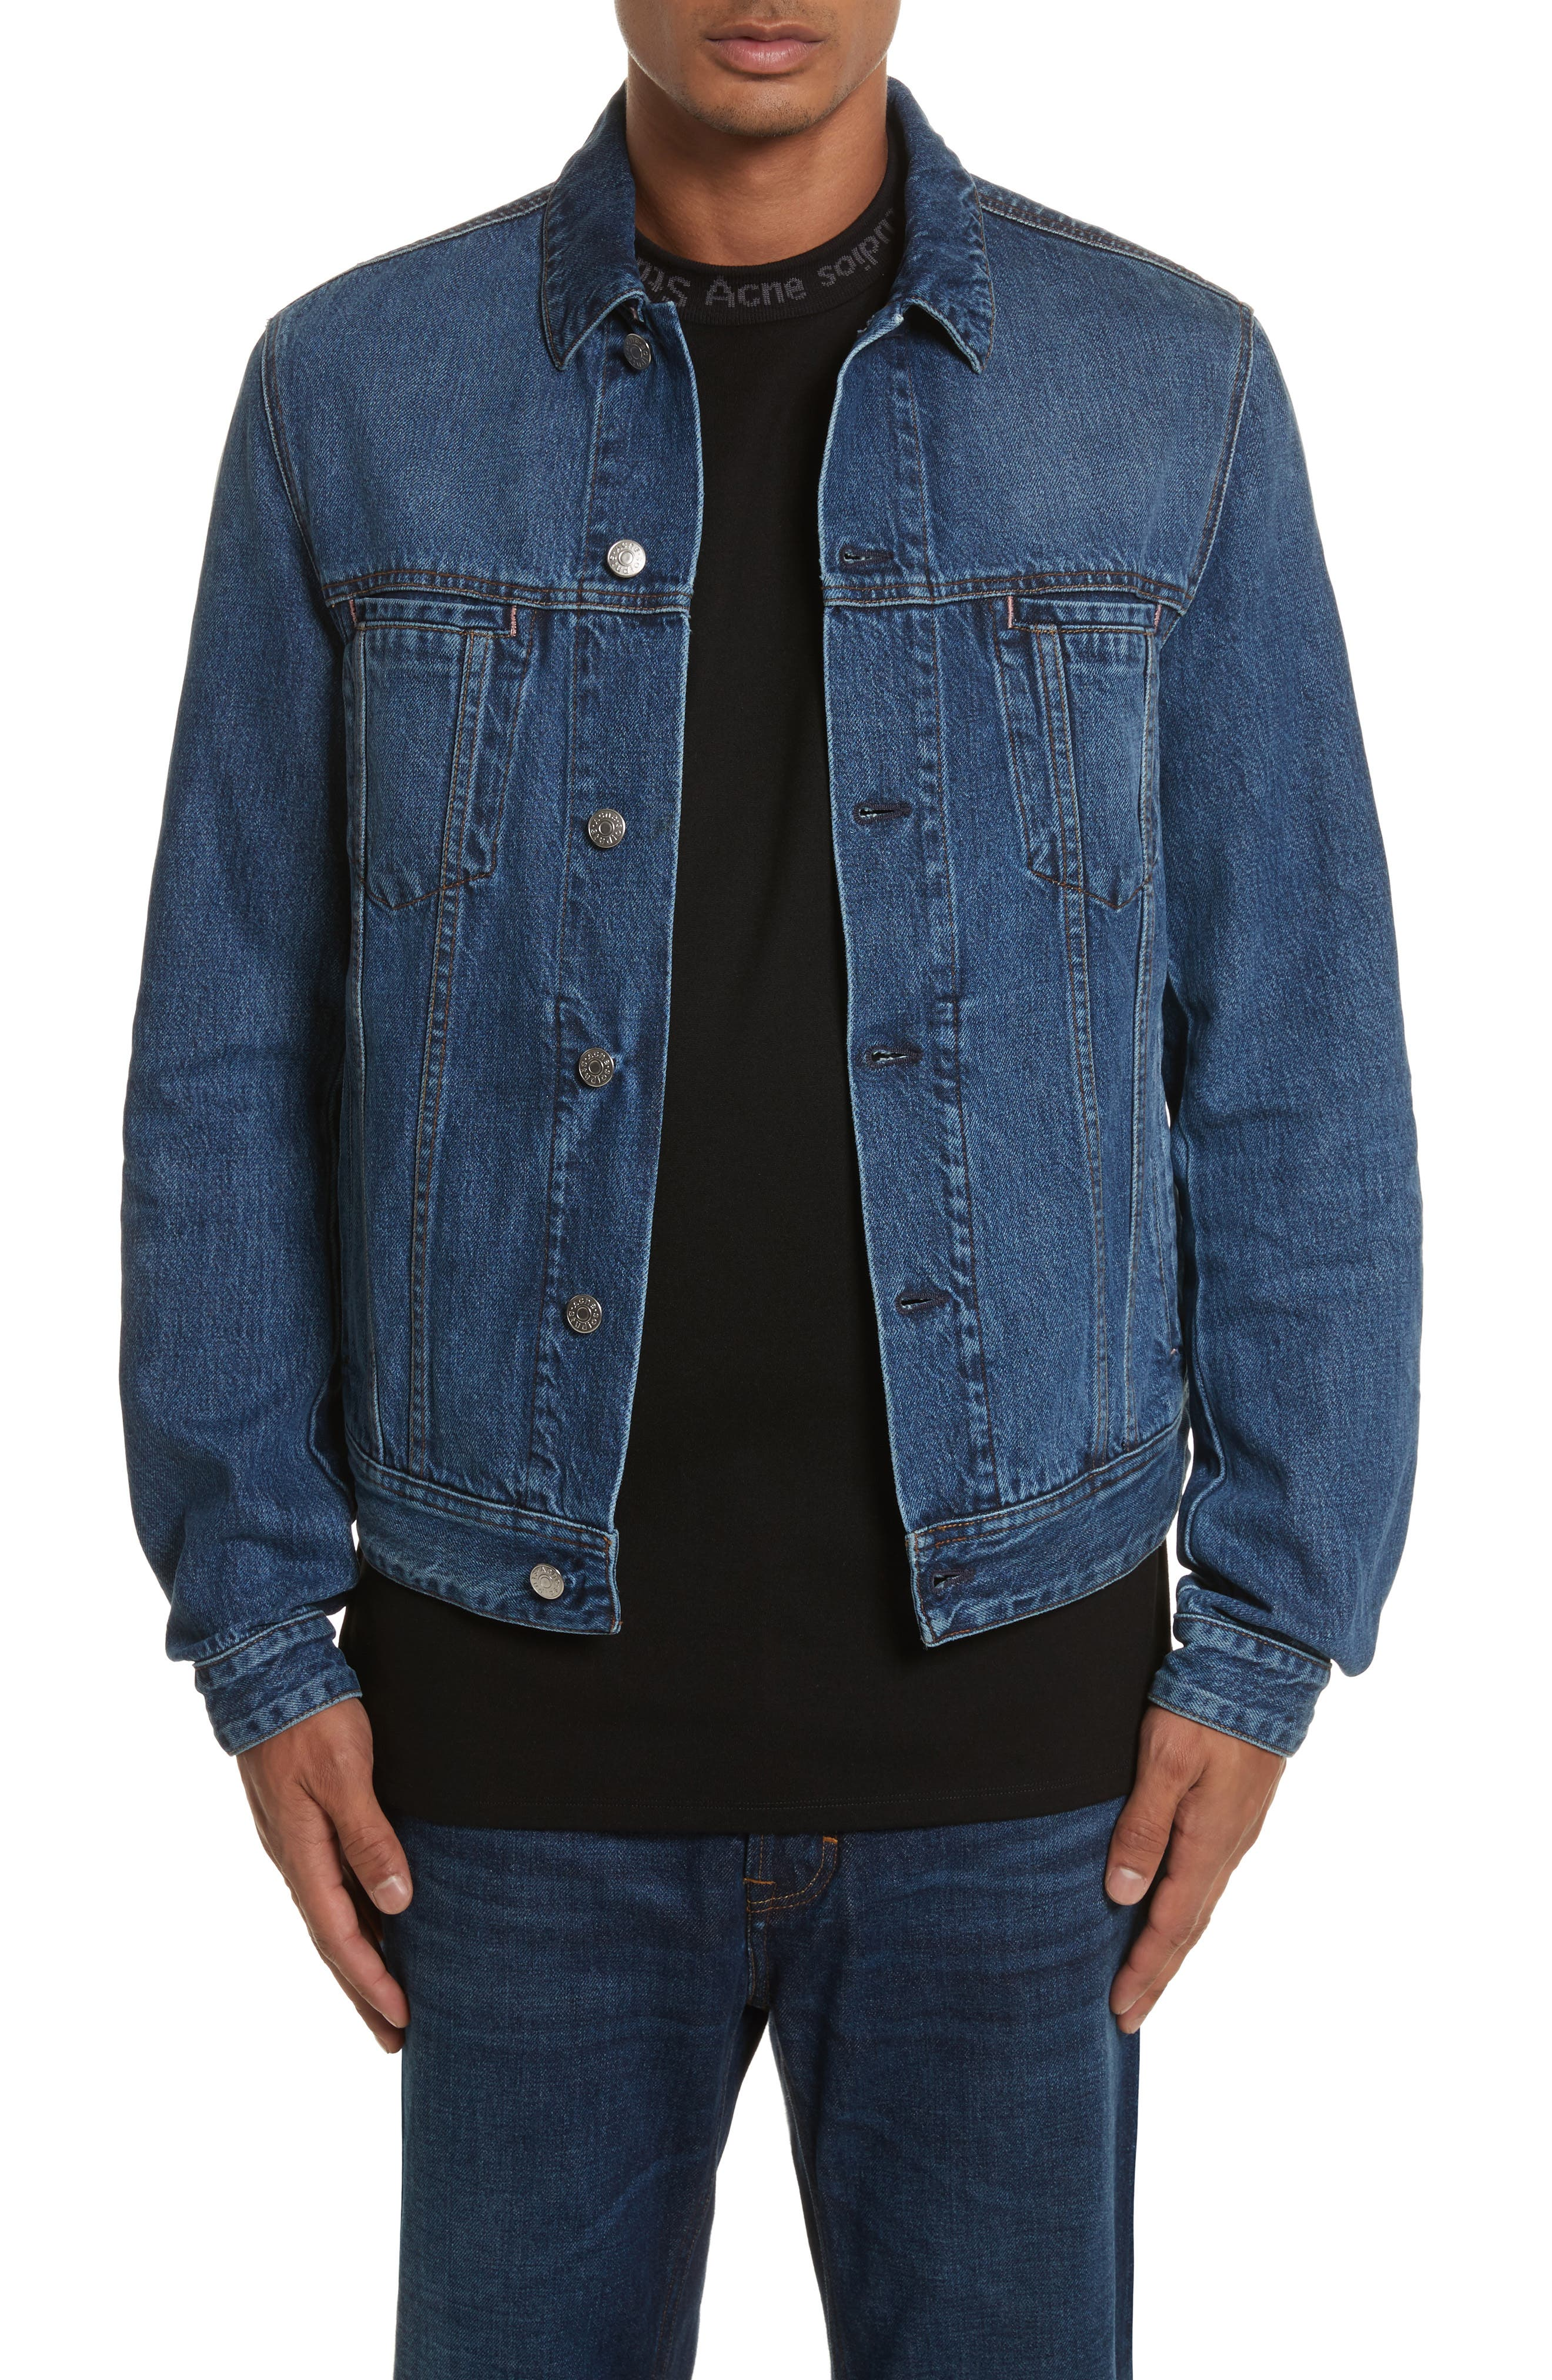 Alternate Image 1 Selected - ACNE Studios Denim Jacket